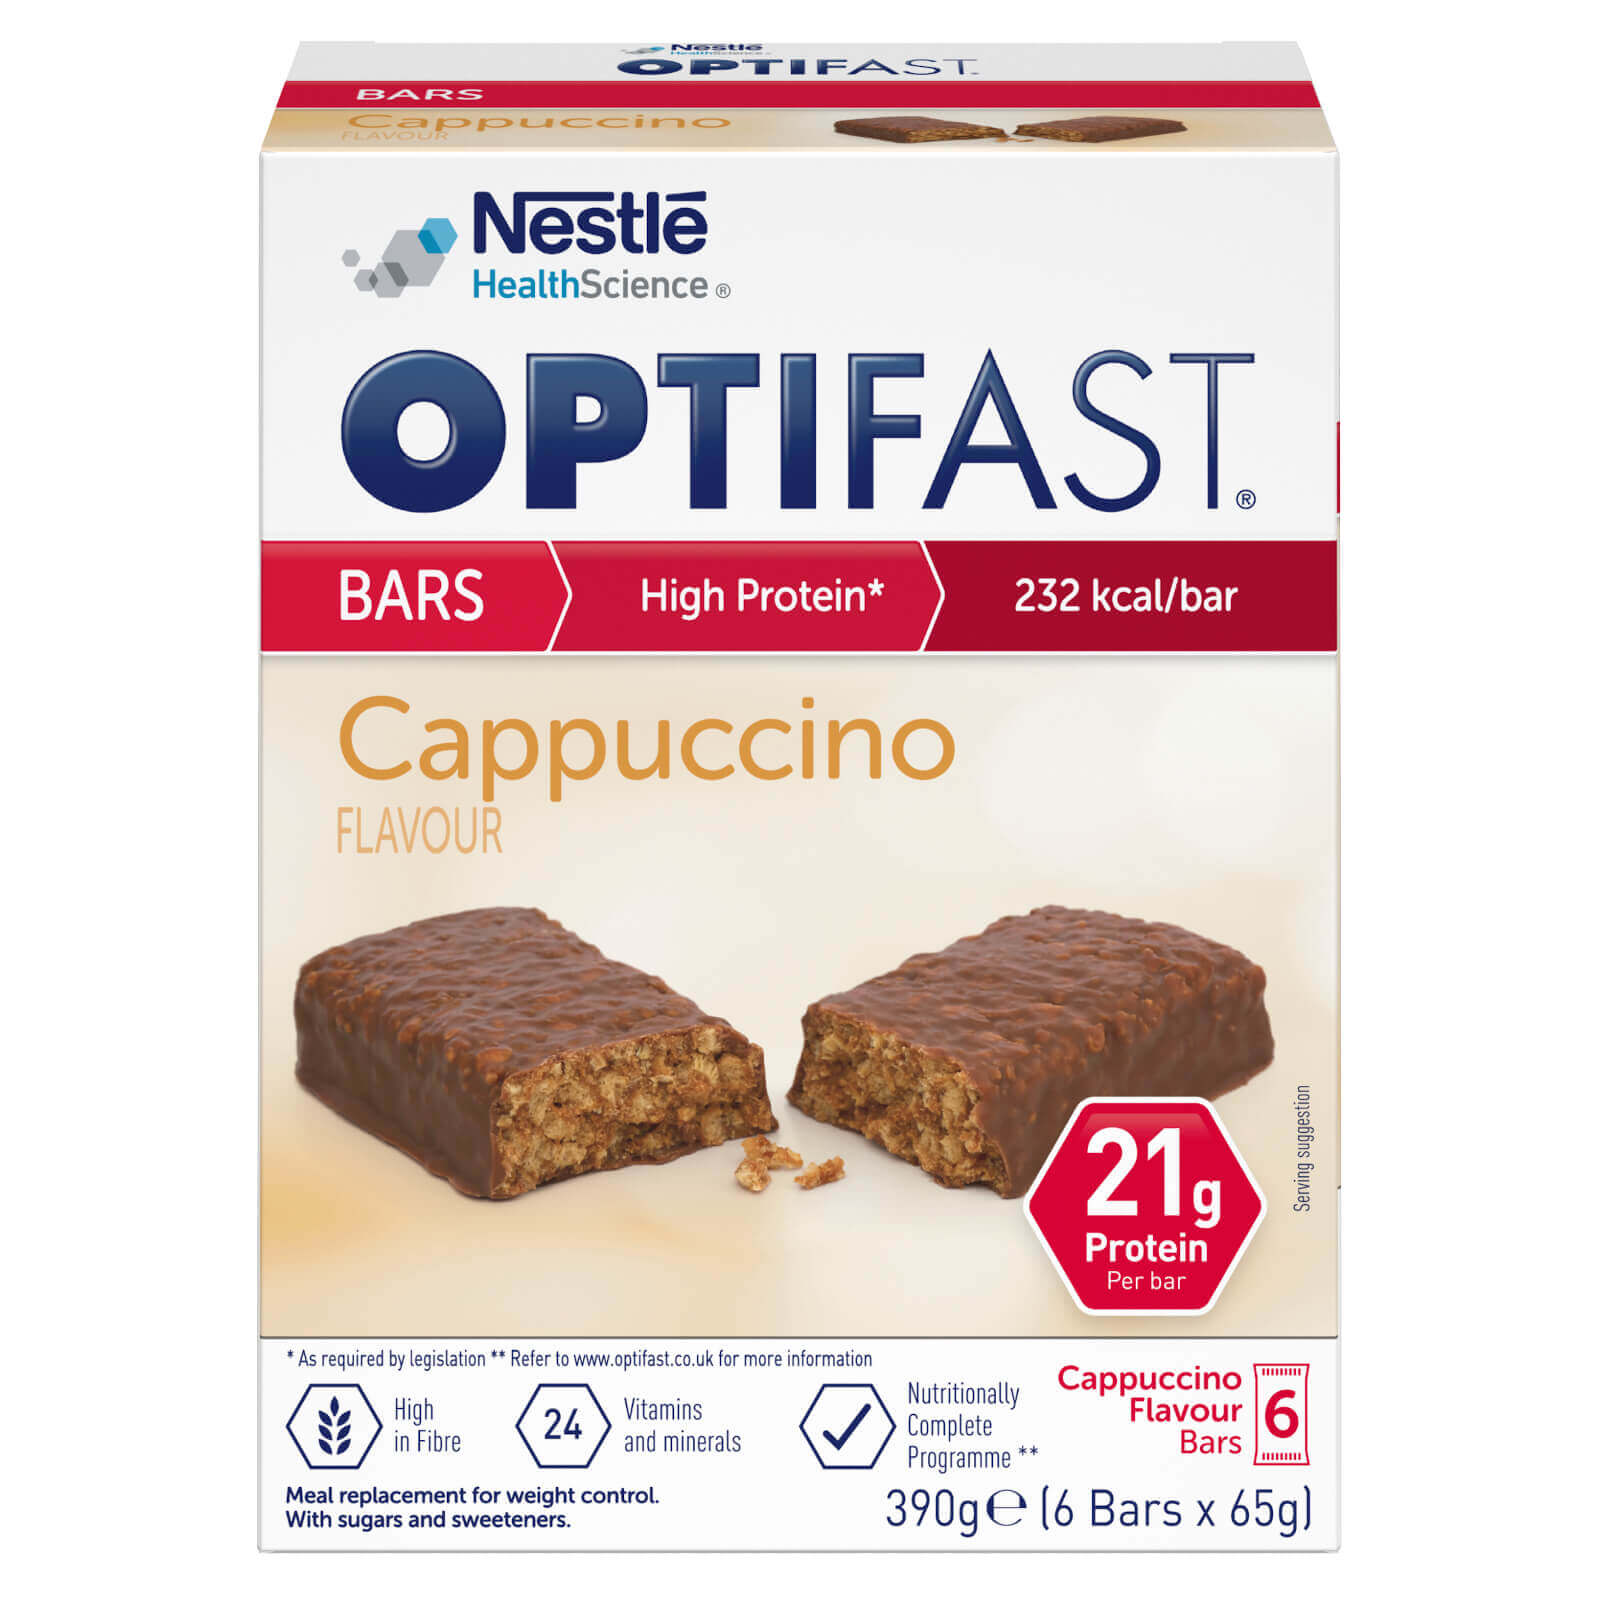 Image of the chocolate flavour OPTIFAST bars